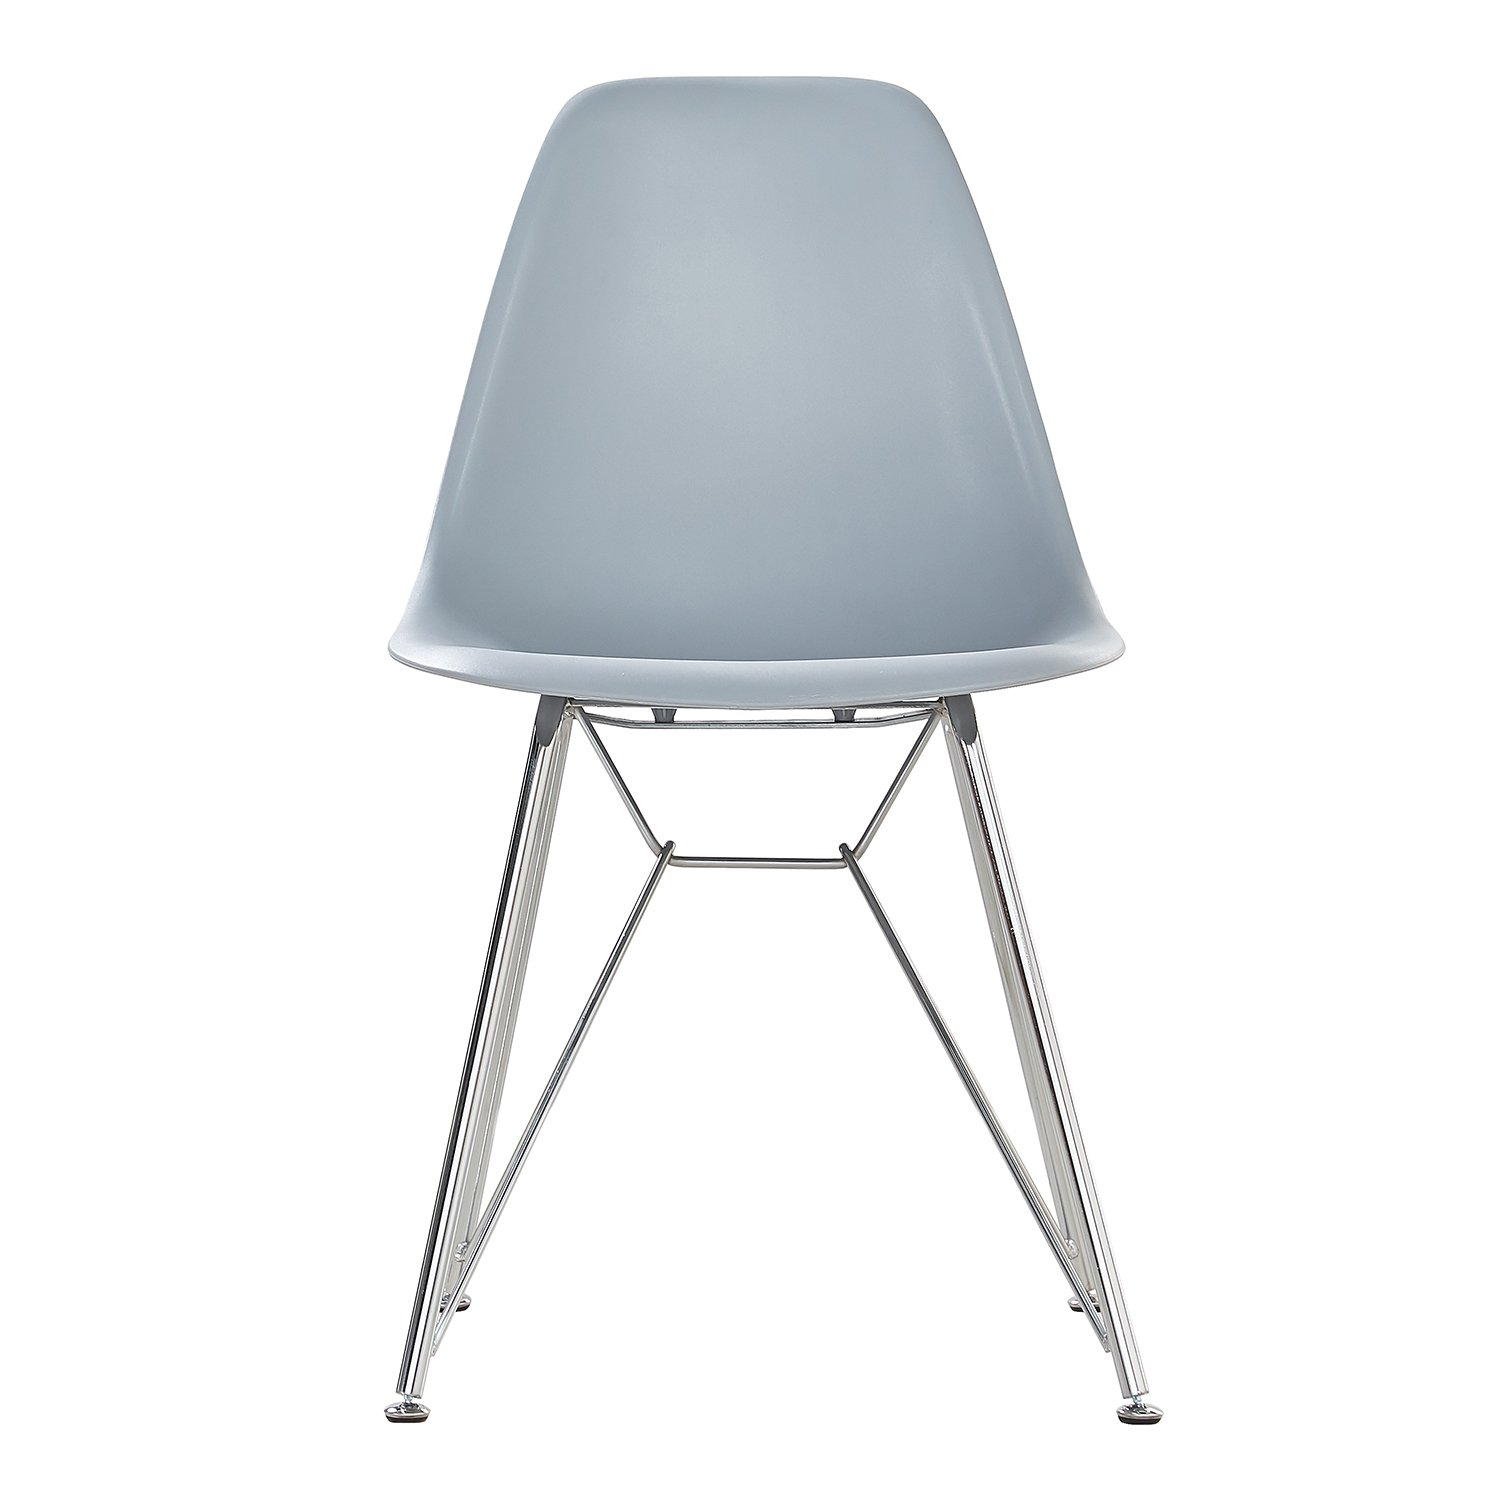 Pu0026N Homewares Valentina Eiffel Inspired Chair In Grey | For Kitchen, Living  Room, Dining Room, Bedroom, Office Etc. | Plastic Seat With Metal Legs |  (Grey ...